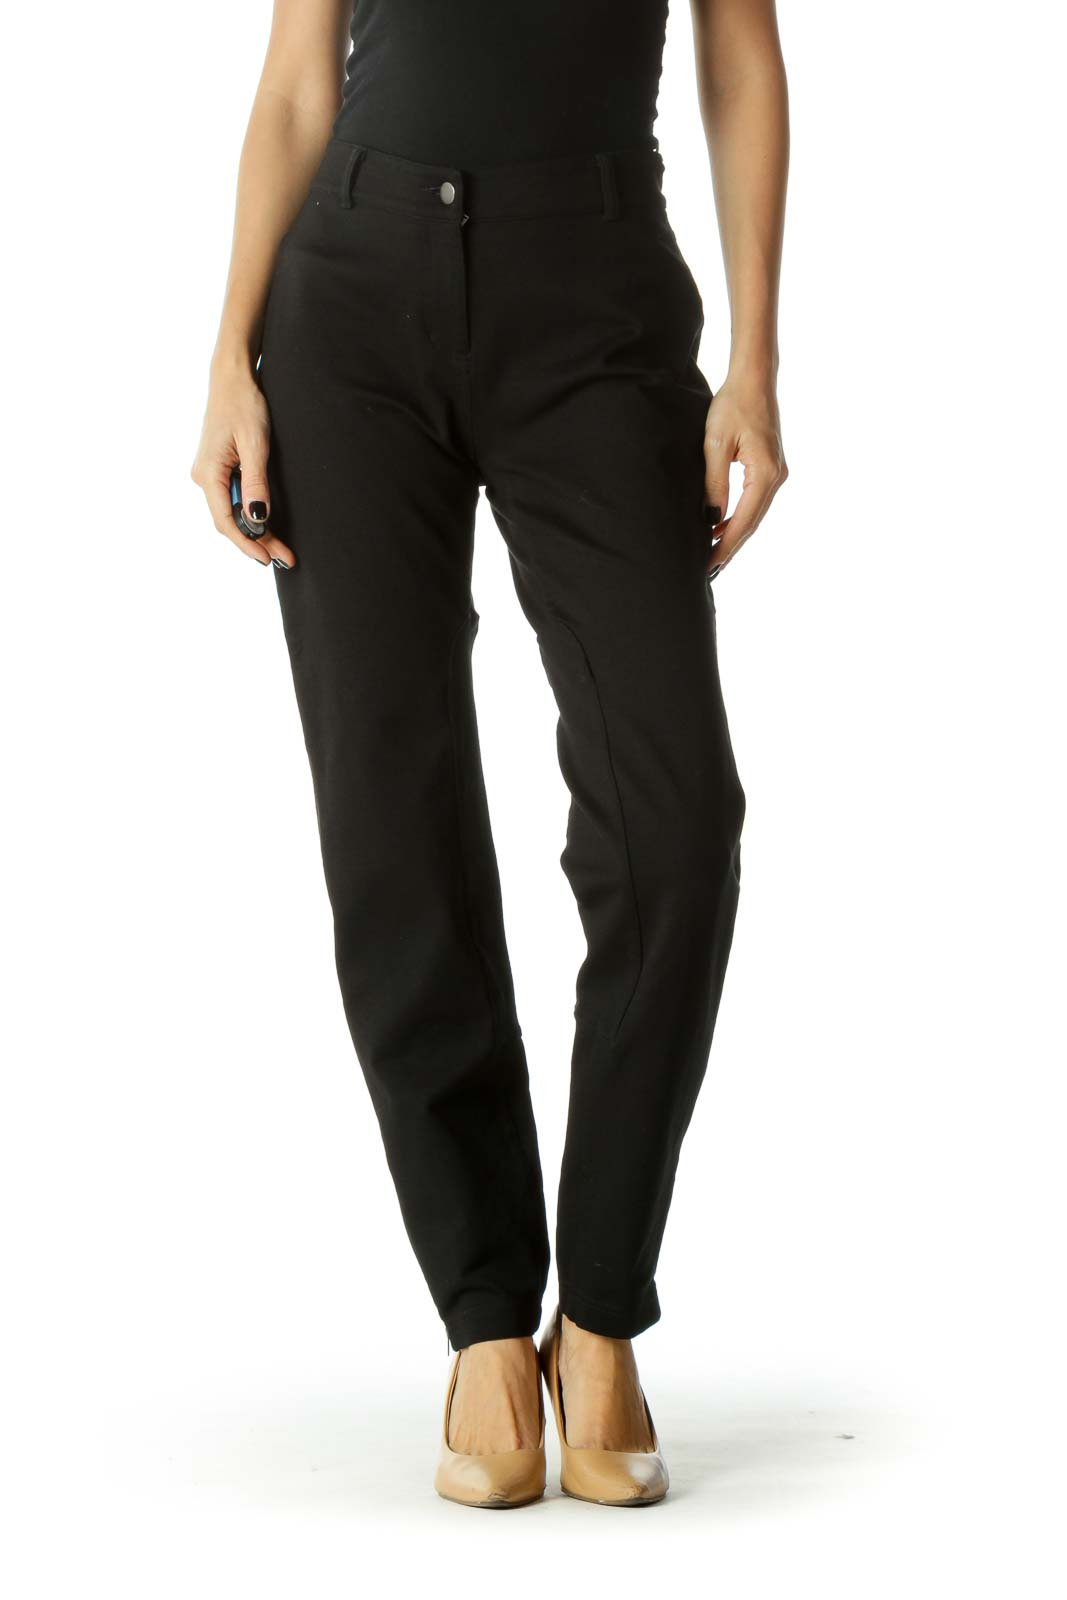 Black Zippered Leg Pocketed Tapered Pants Front